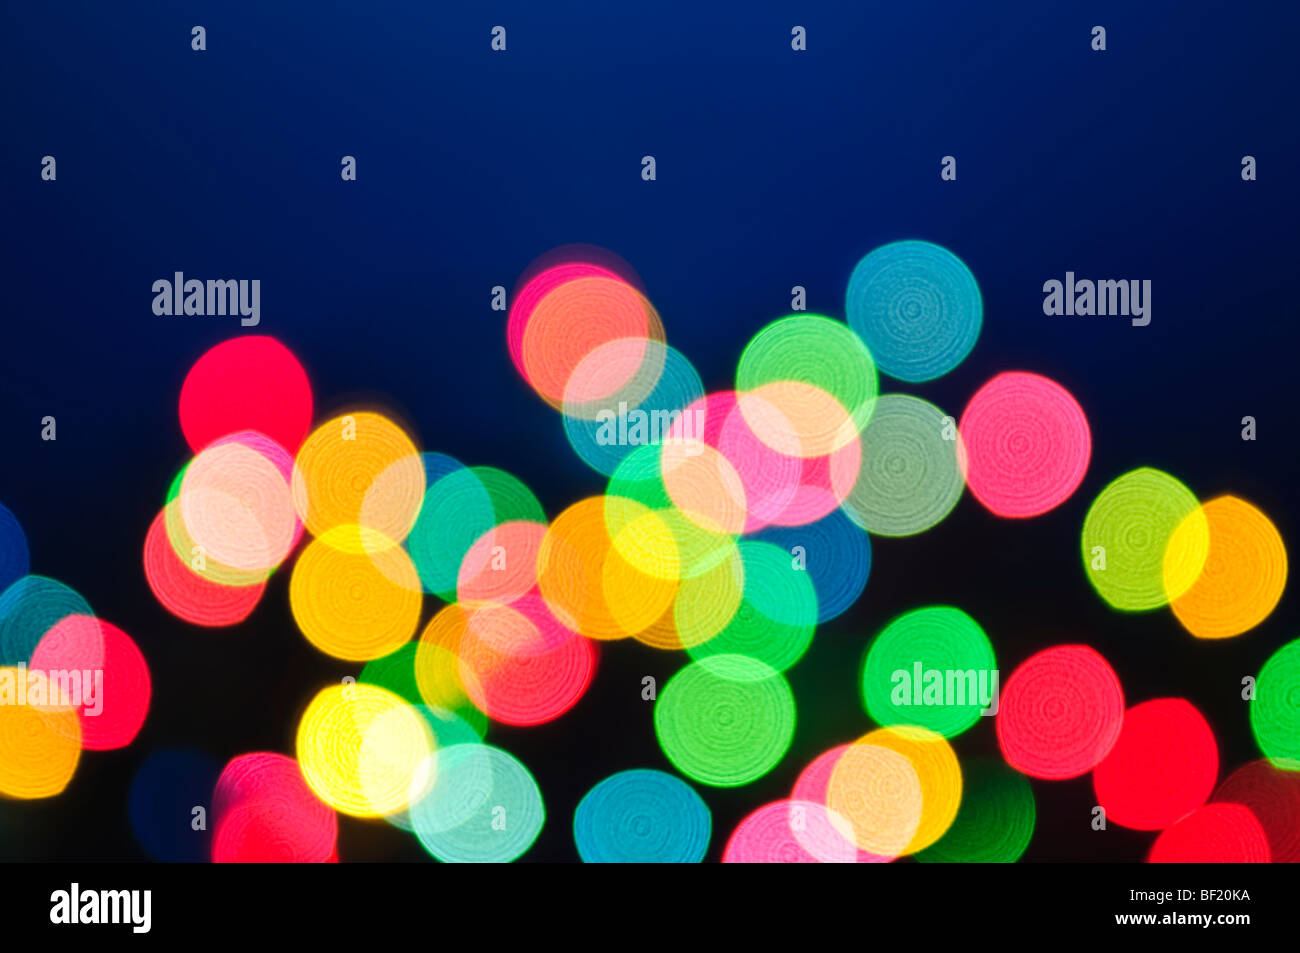 Out of focus multicolored Christmas light background - Stock Image